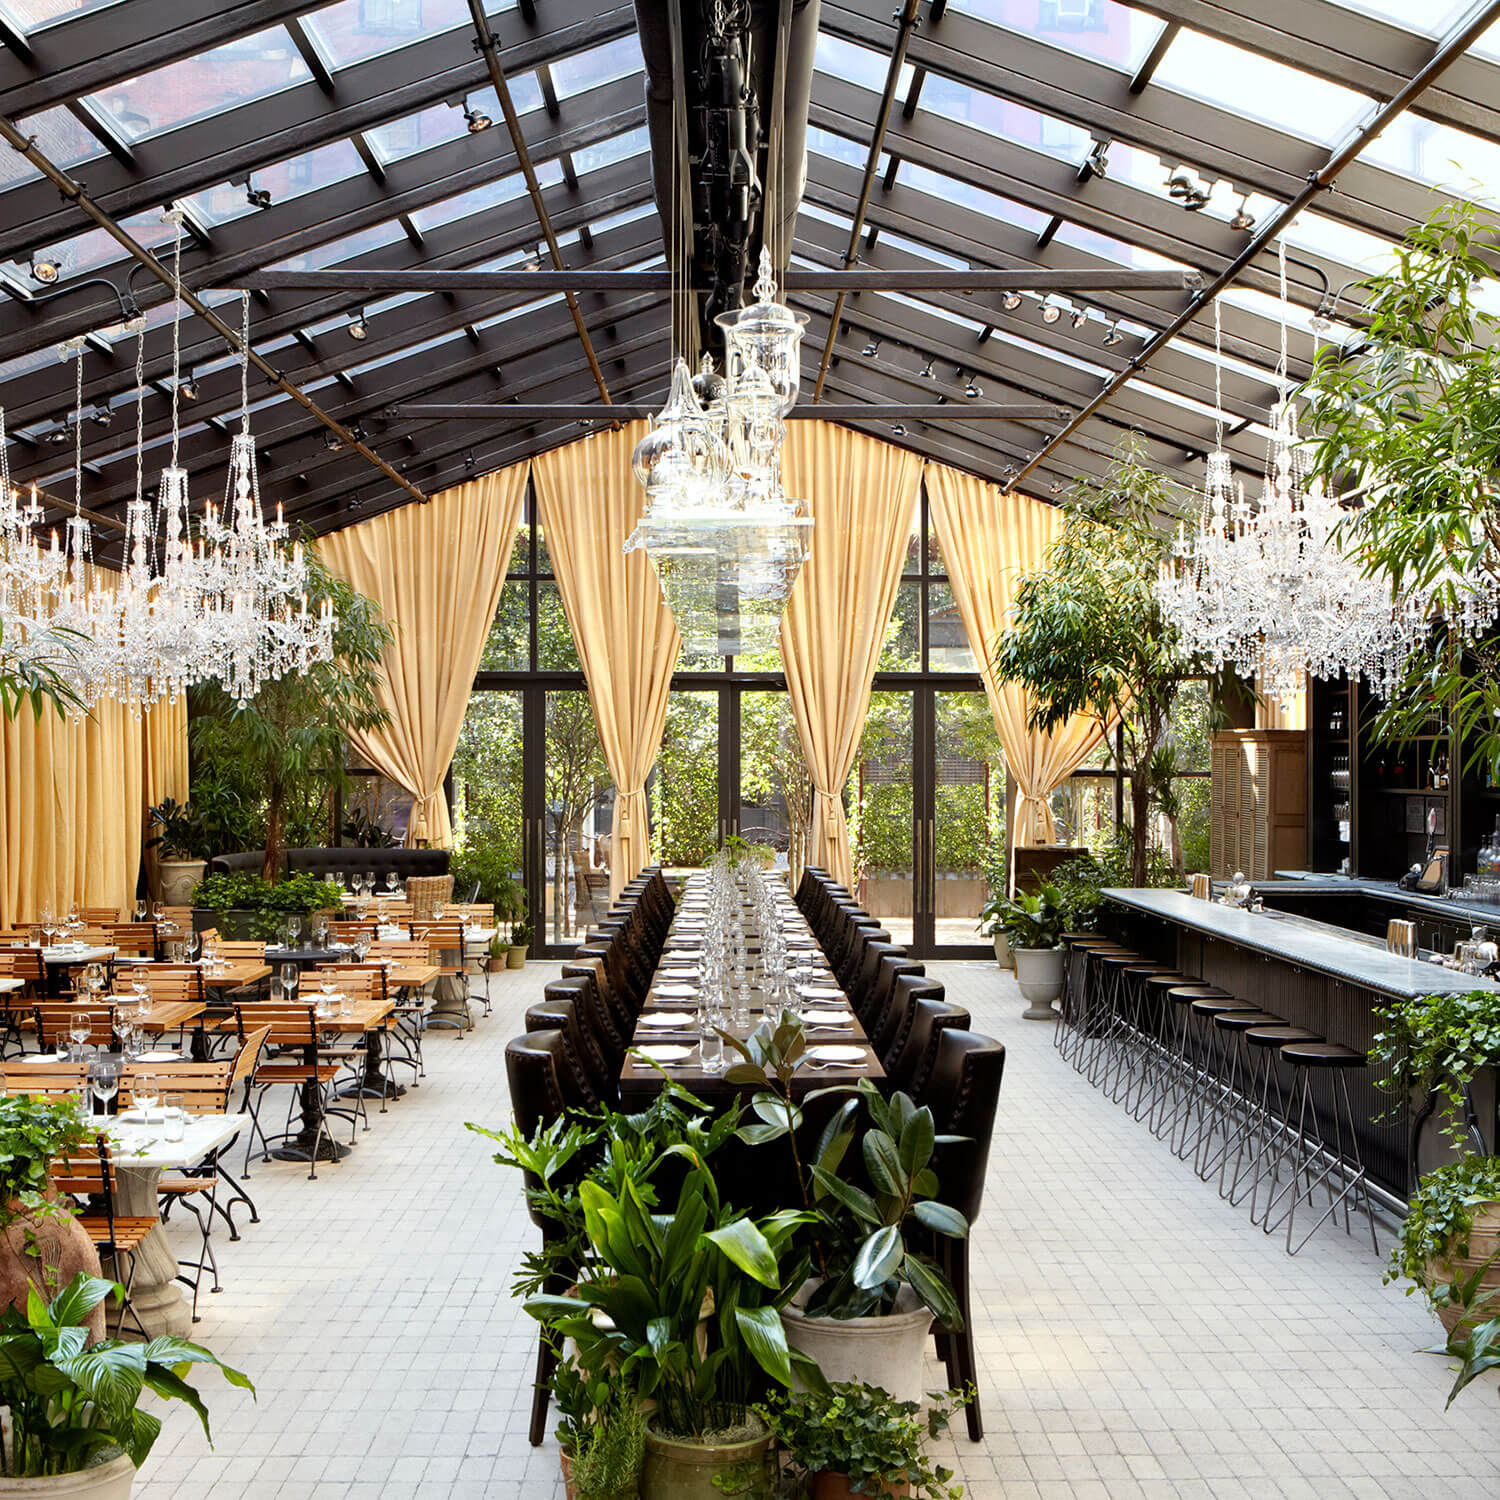 15 Garden Restaurant Design Ideas With Interior Look The Architecture Designs